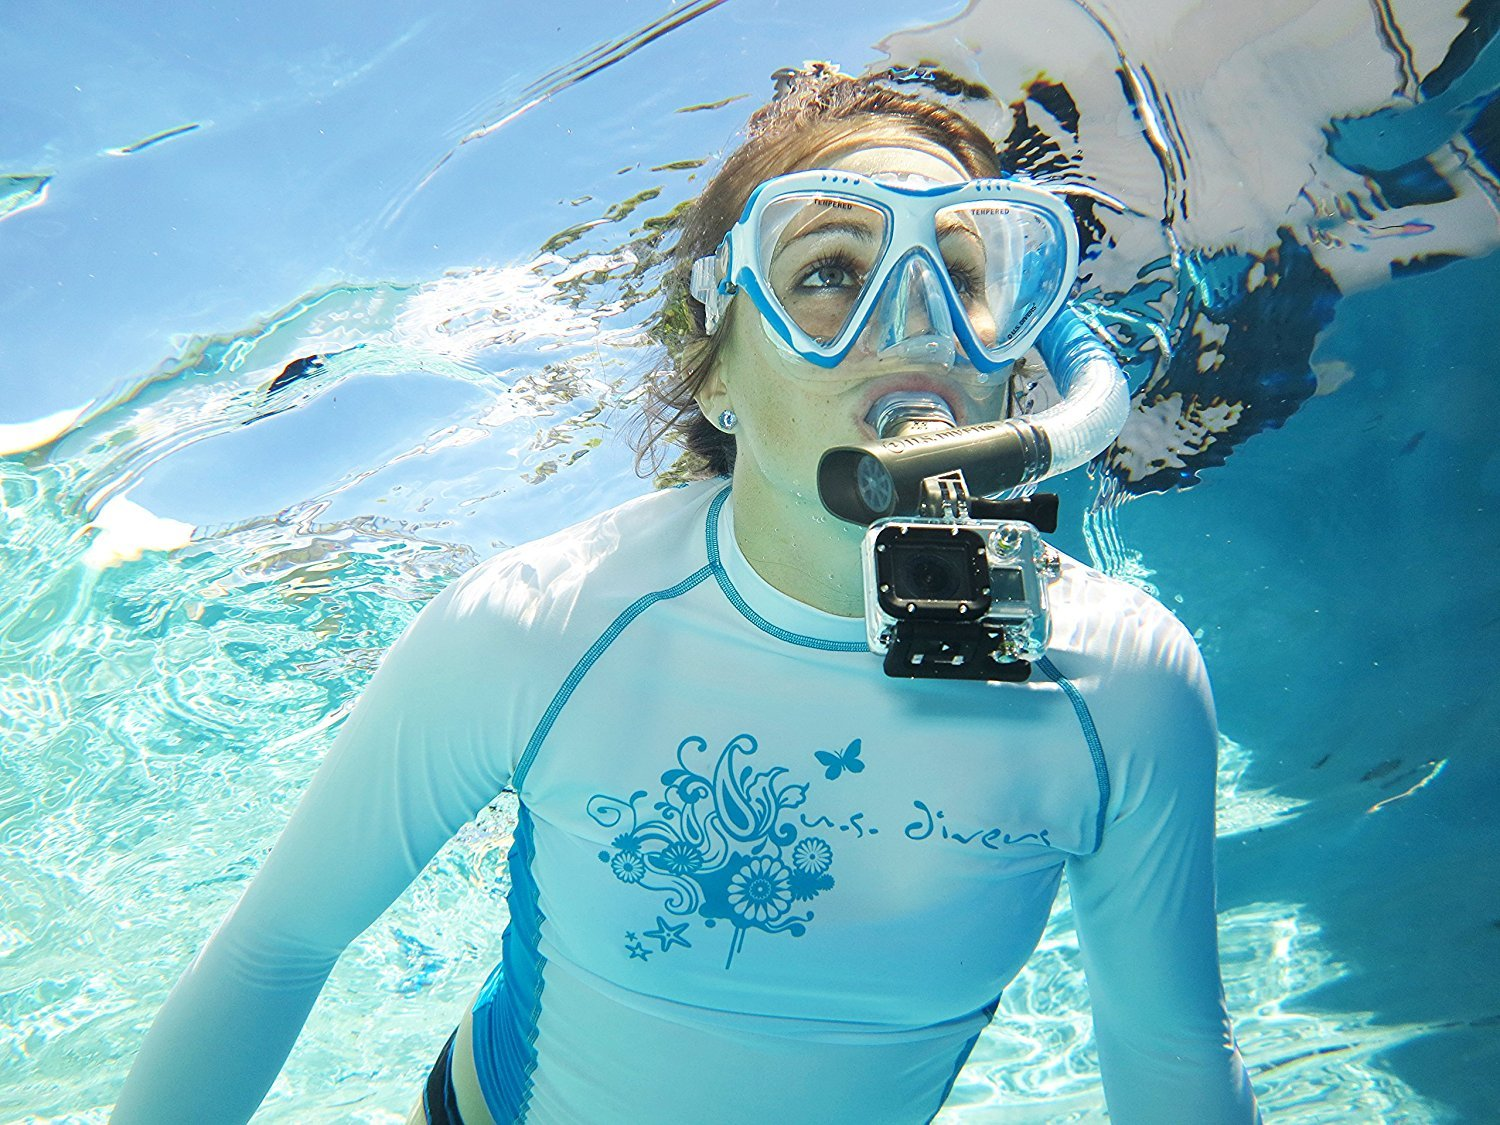 Large//X-Large Divers Lux Mask Fins Snorkel Set Compatible with GoPro U.S White